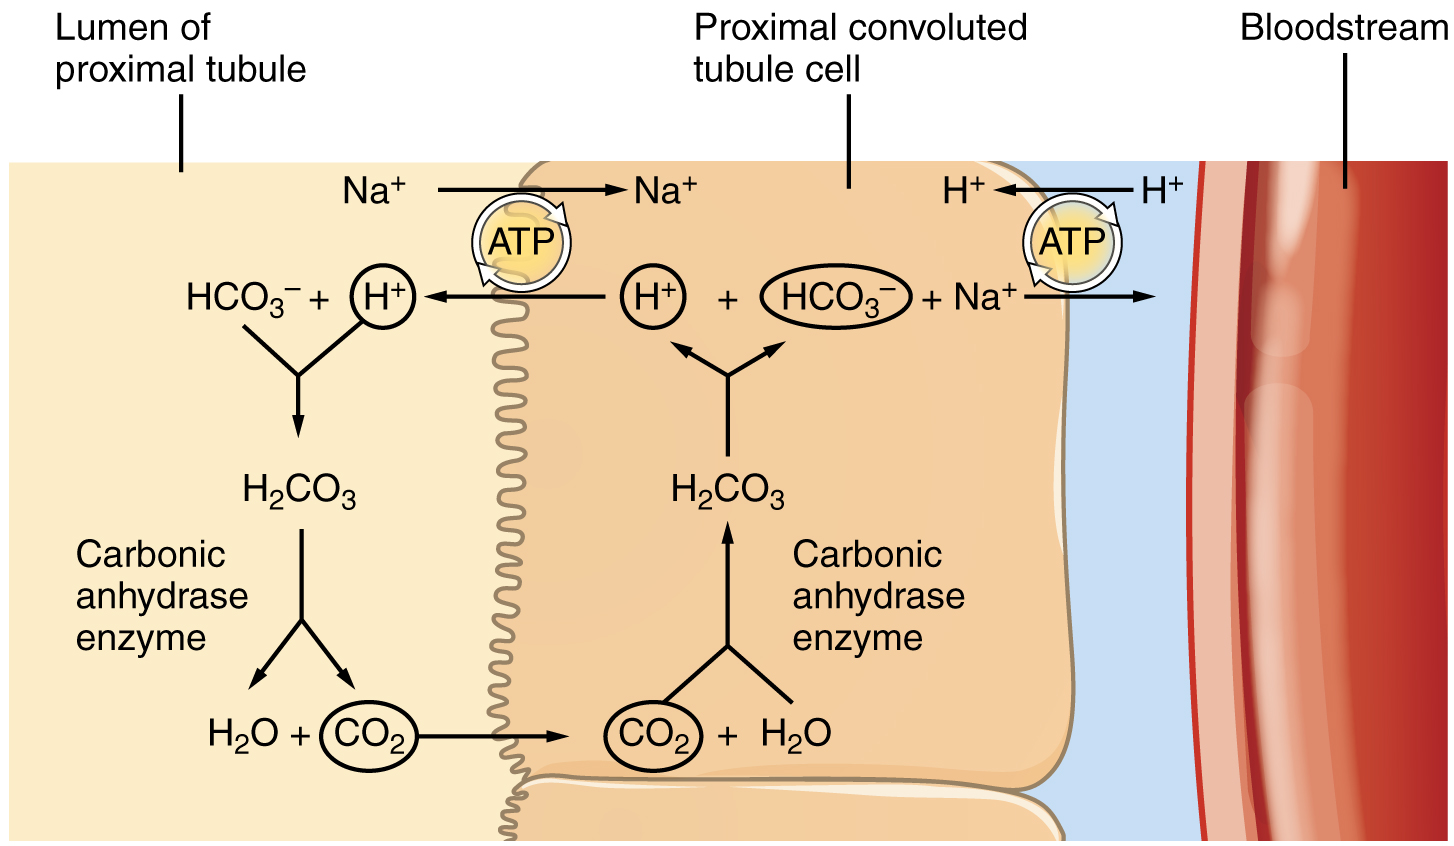 This diagram shows the process of reabsorption of bicarbonate by the proximal collecting tubule.